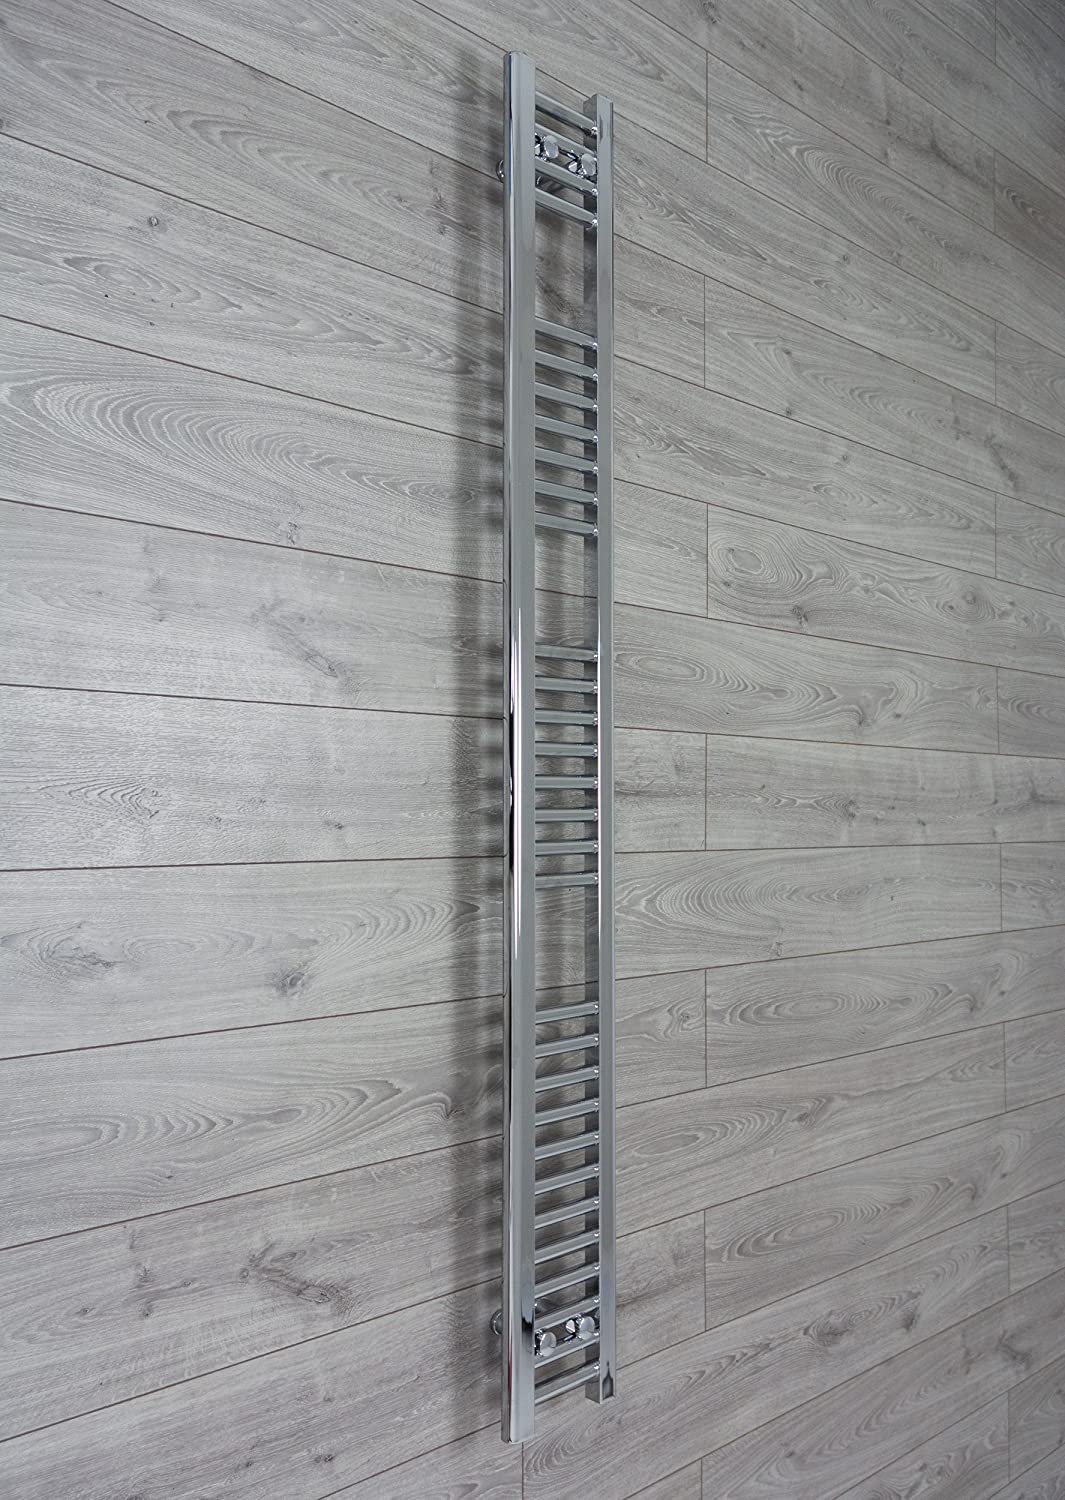 200mm wide x 1800mm high Small Narrow Heated Towel Rail Straight Flat Chrome Bathroom Warmer Radiator Rack